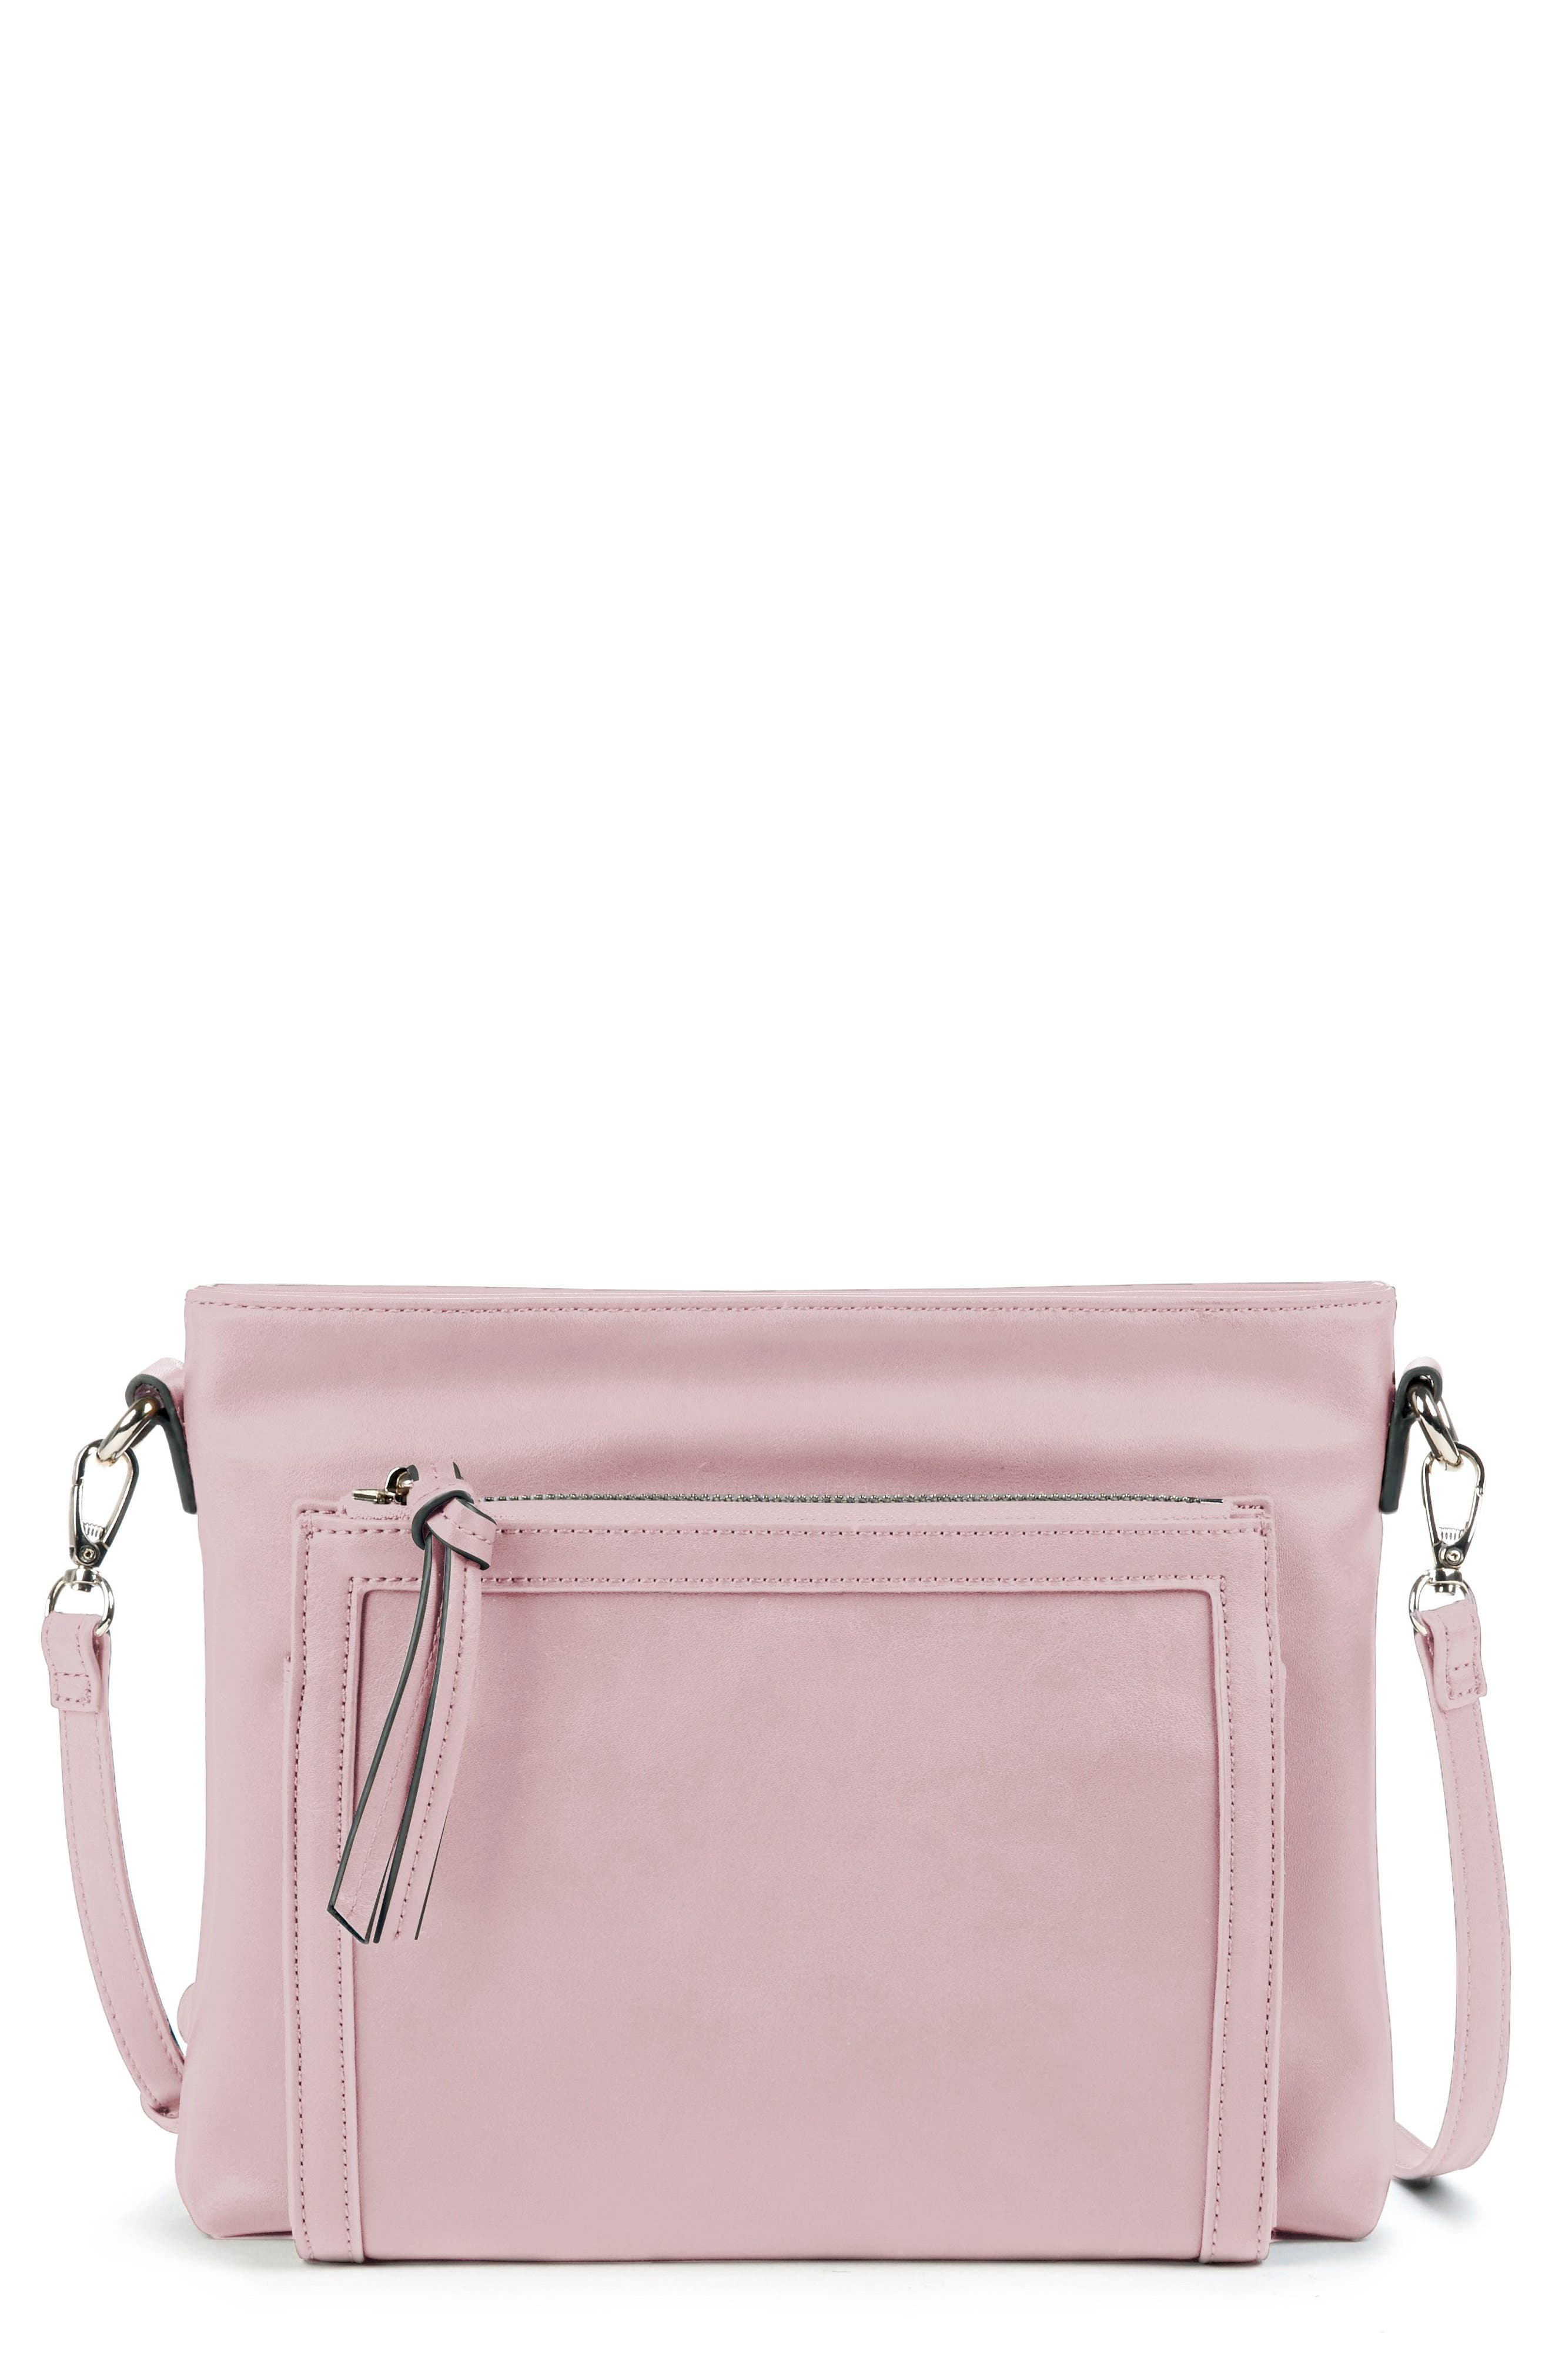 Sole Society Flat Faux Leather Crossbody Bag